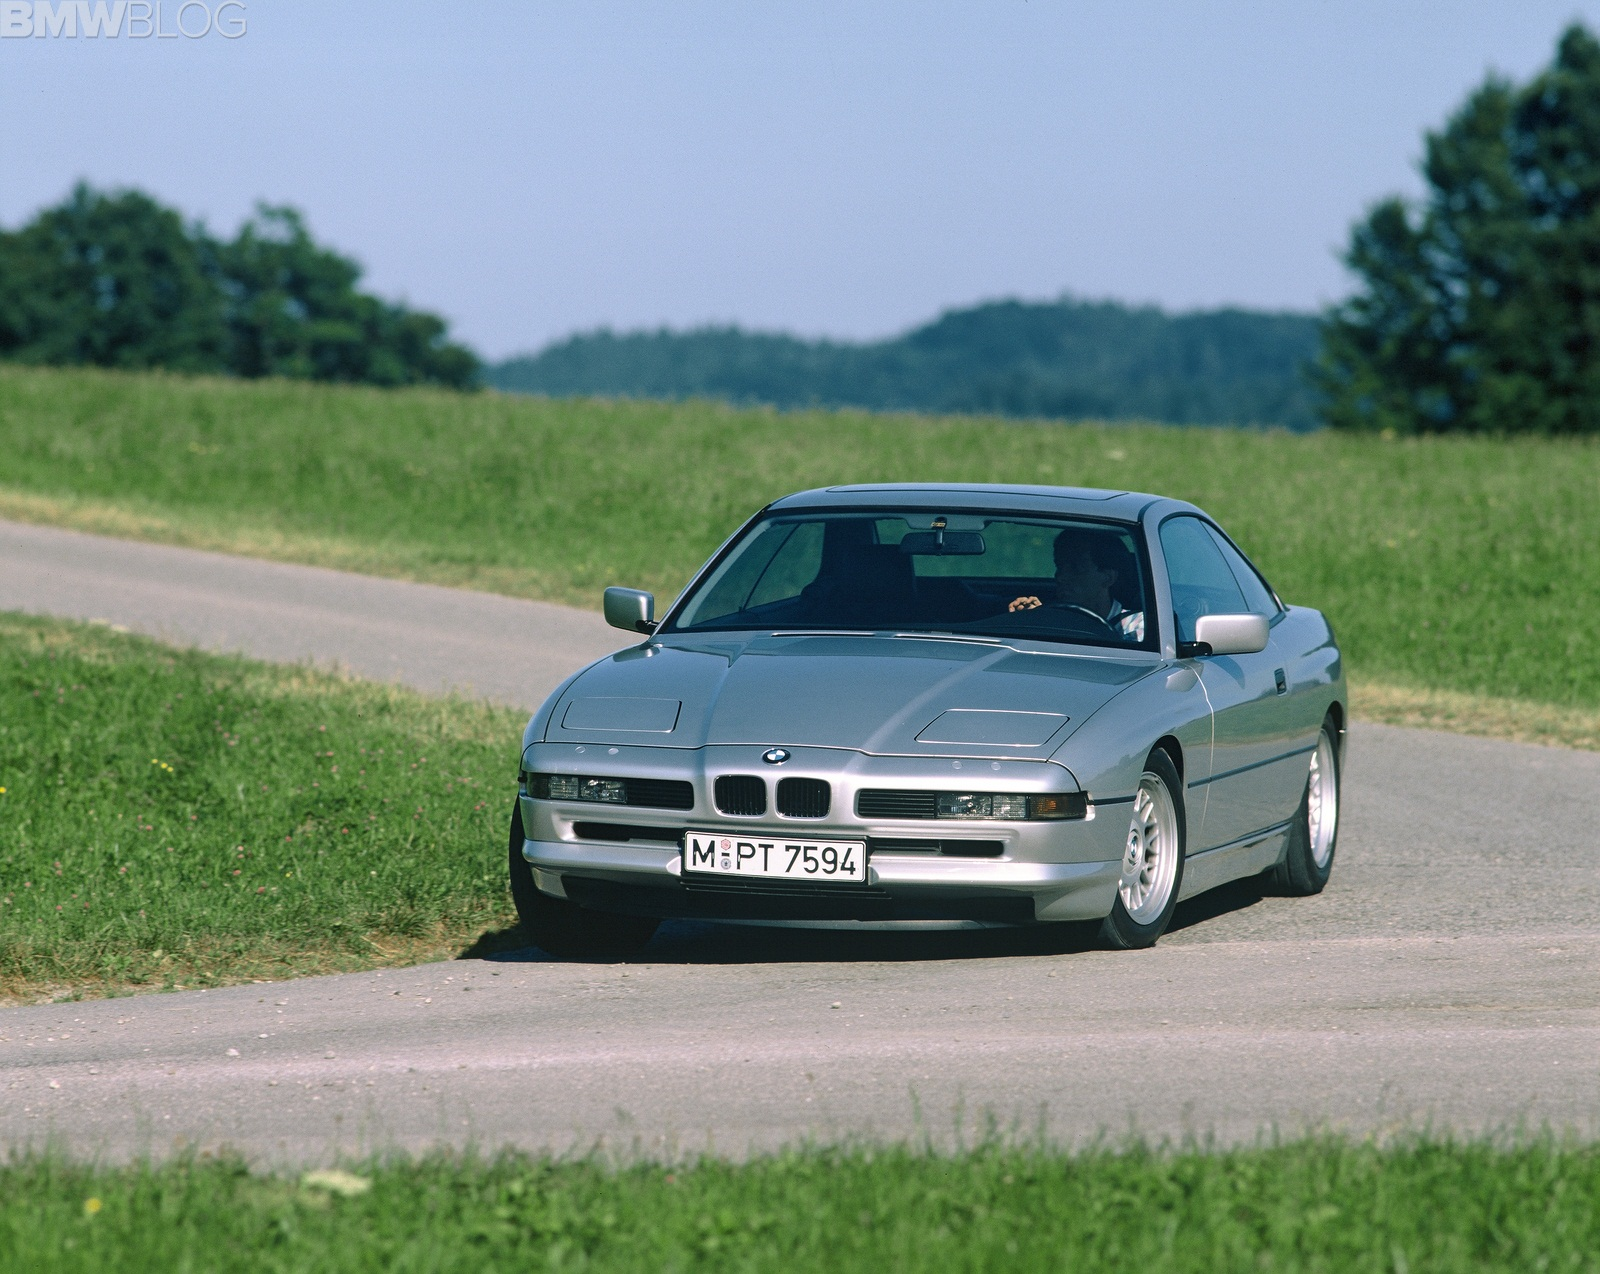 bmw 8 series images 14